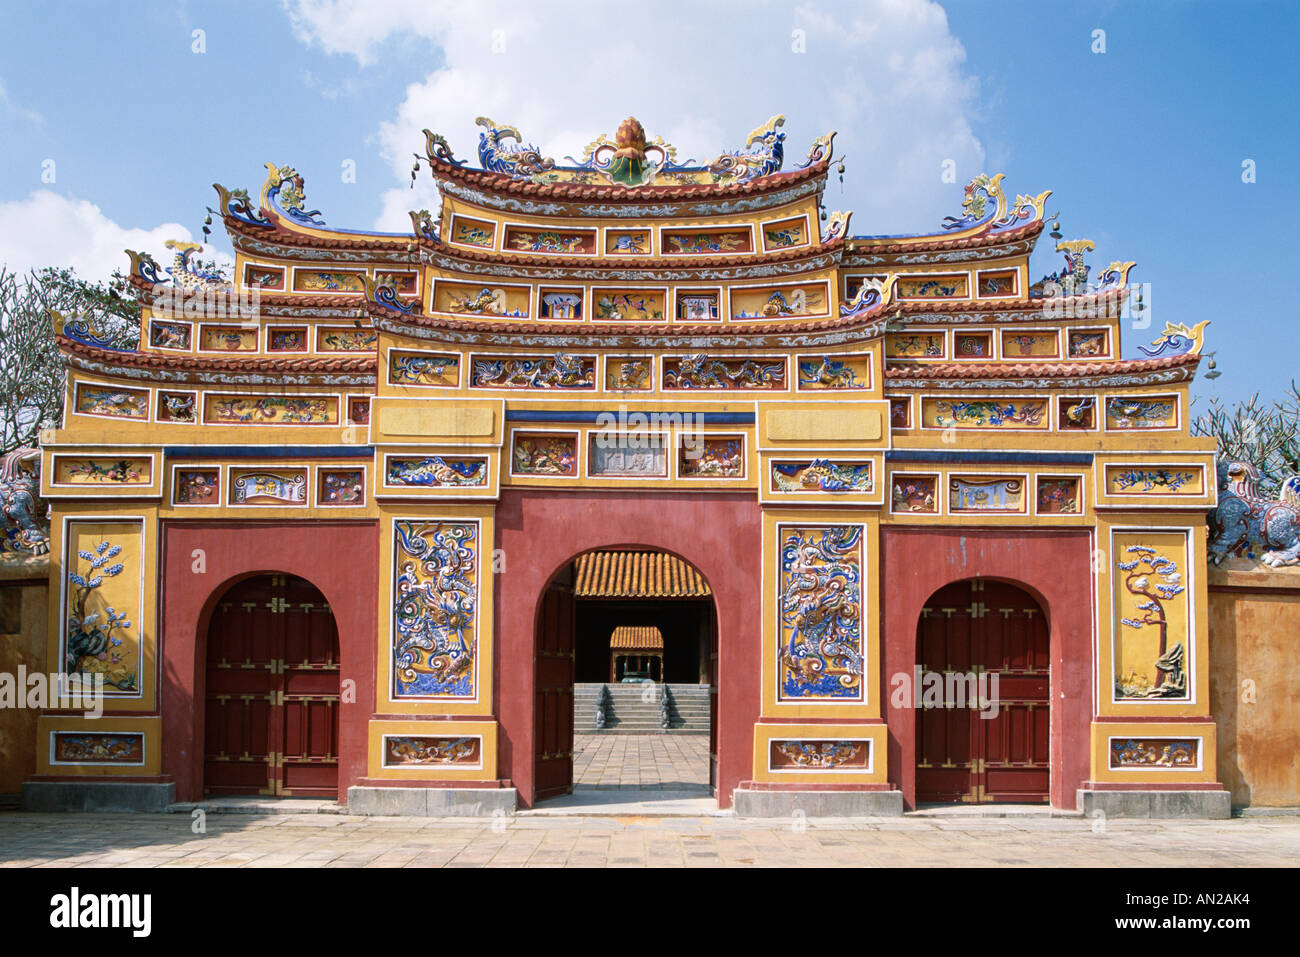 The Citadel Imperial Palace Forbidden Purple City Gate Stock Photo Alamy